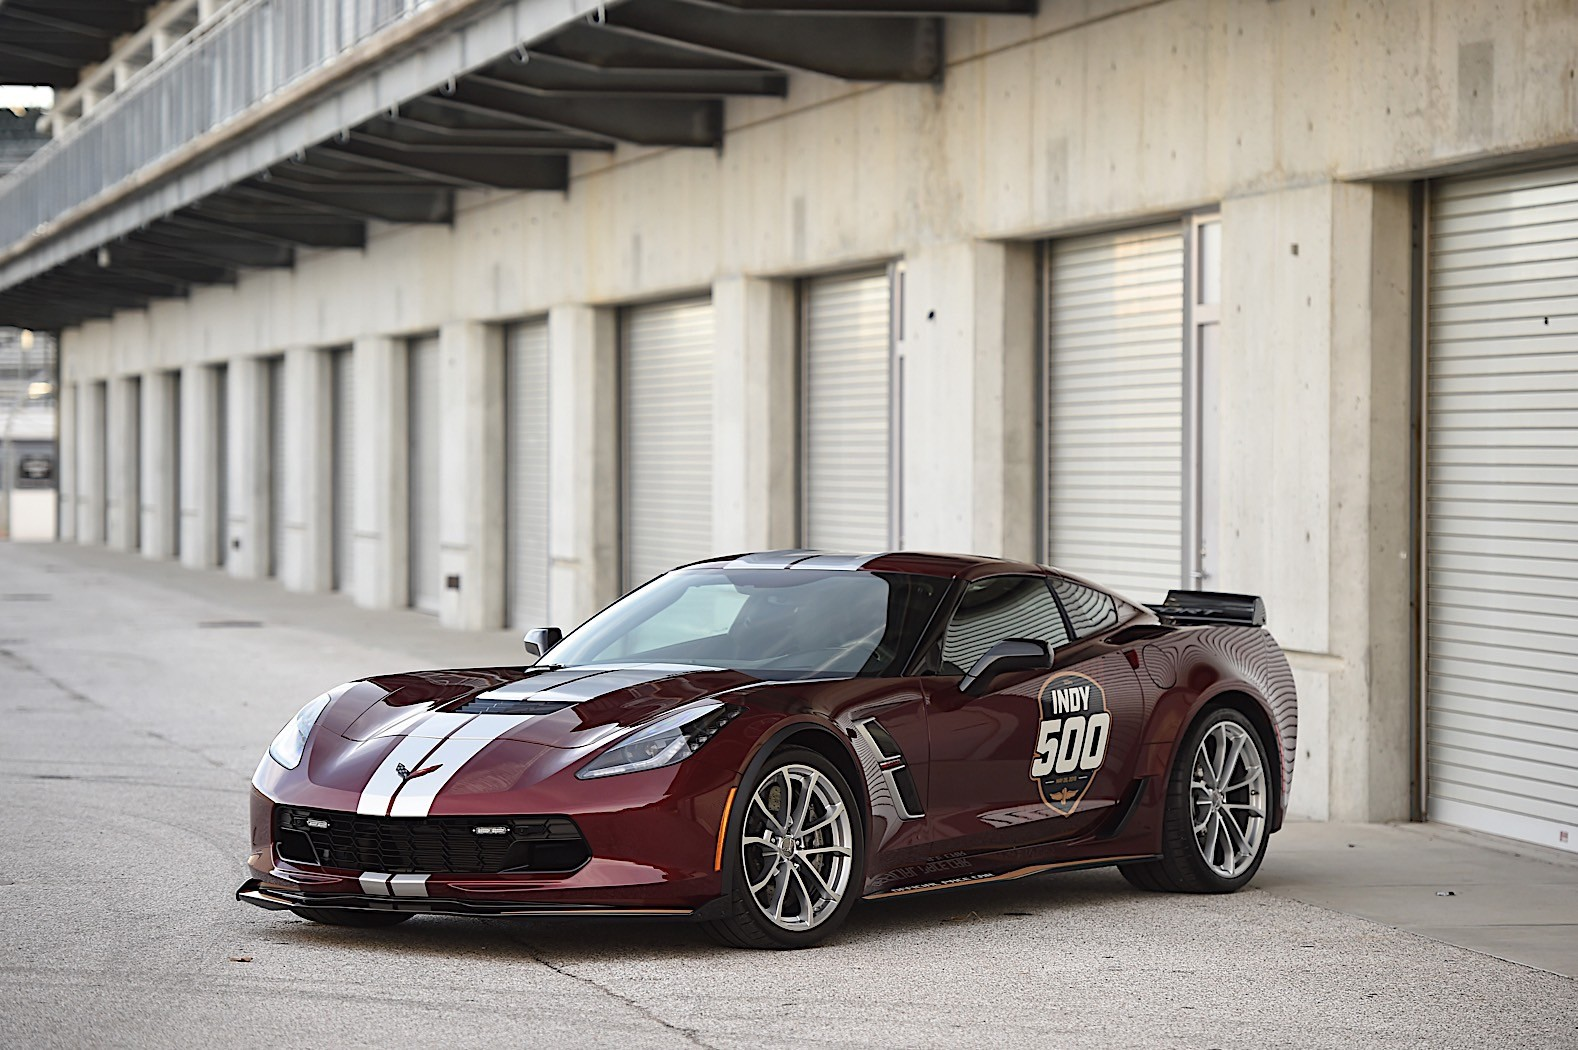 2019 Indy 500 Pace Car: 2019 Corvette Grand Sport To Pace Indy 500, Chevy To Make